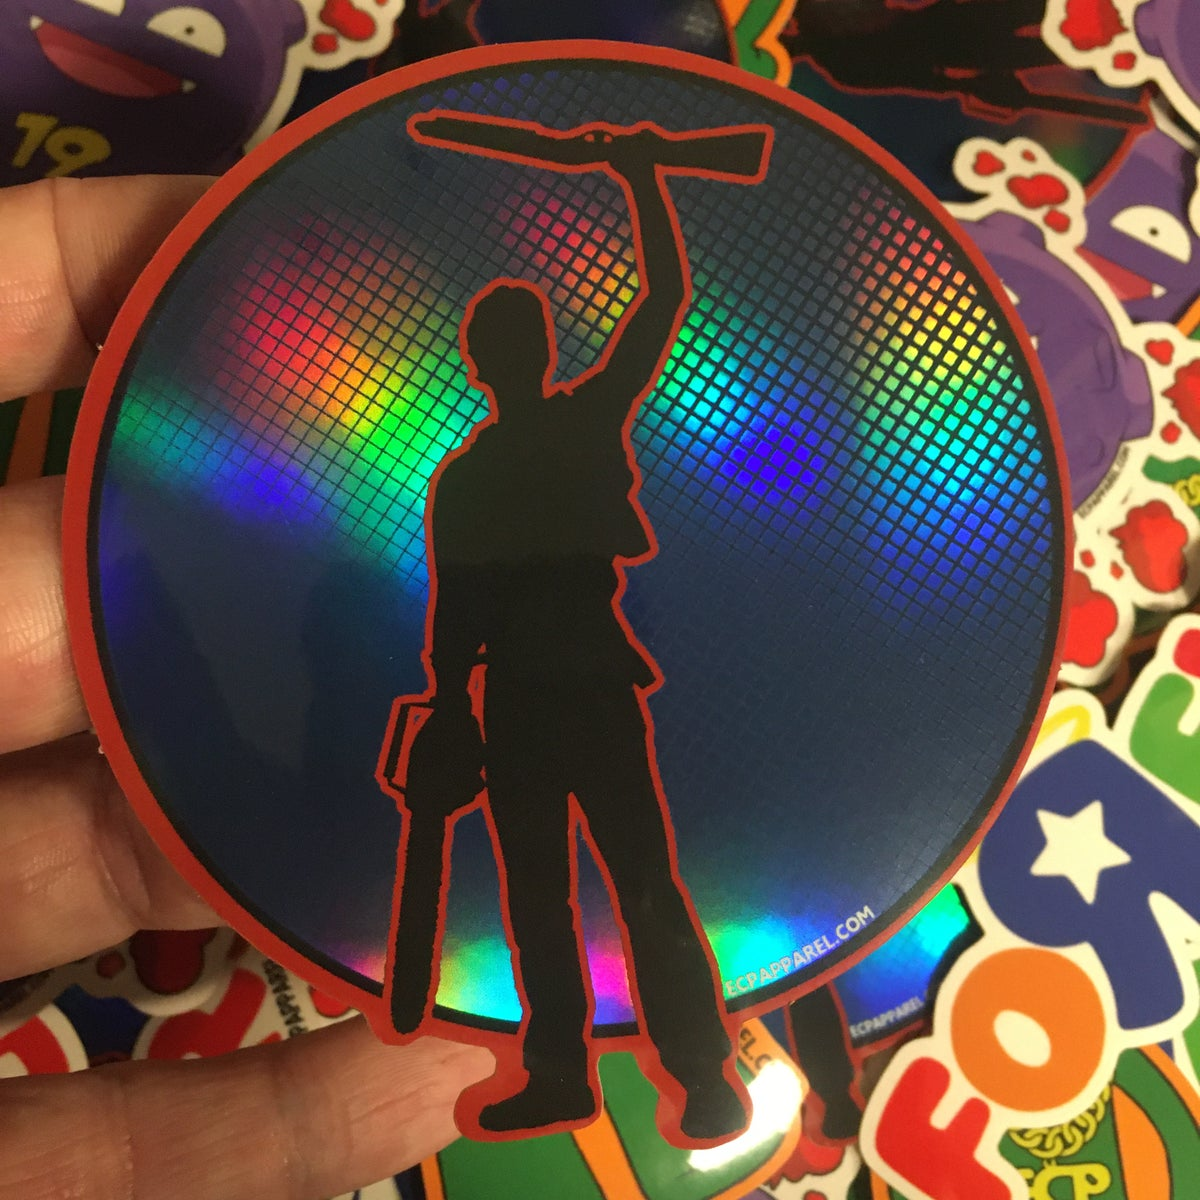 """Boom Stick!"" - Die-Cut Hologram Sticker"